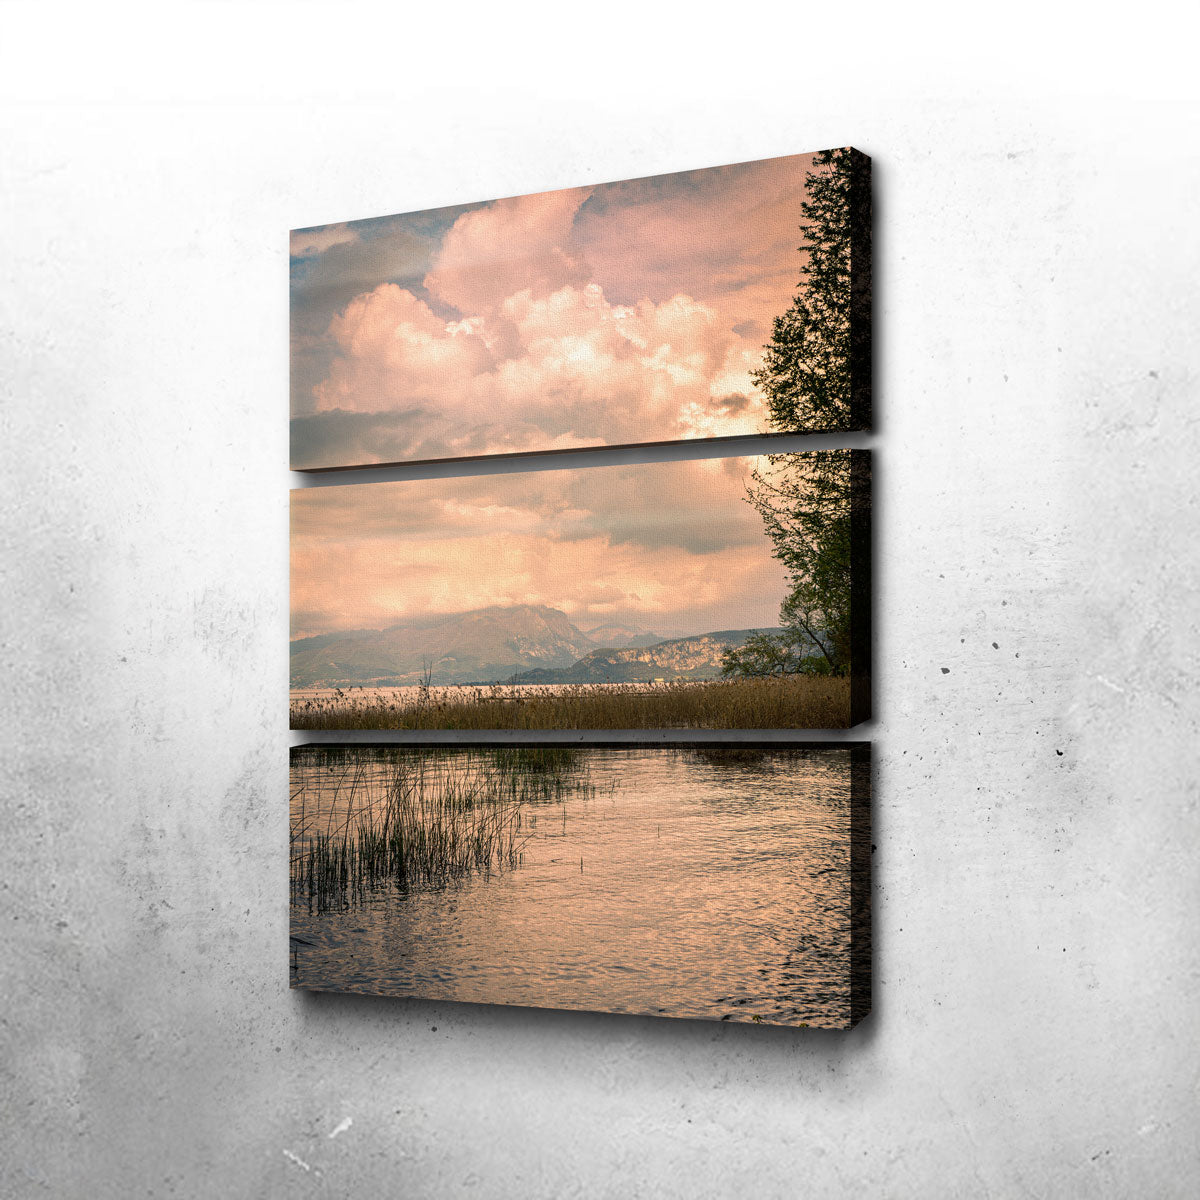 A Painting From A Lake